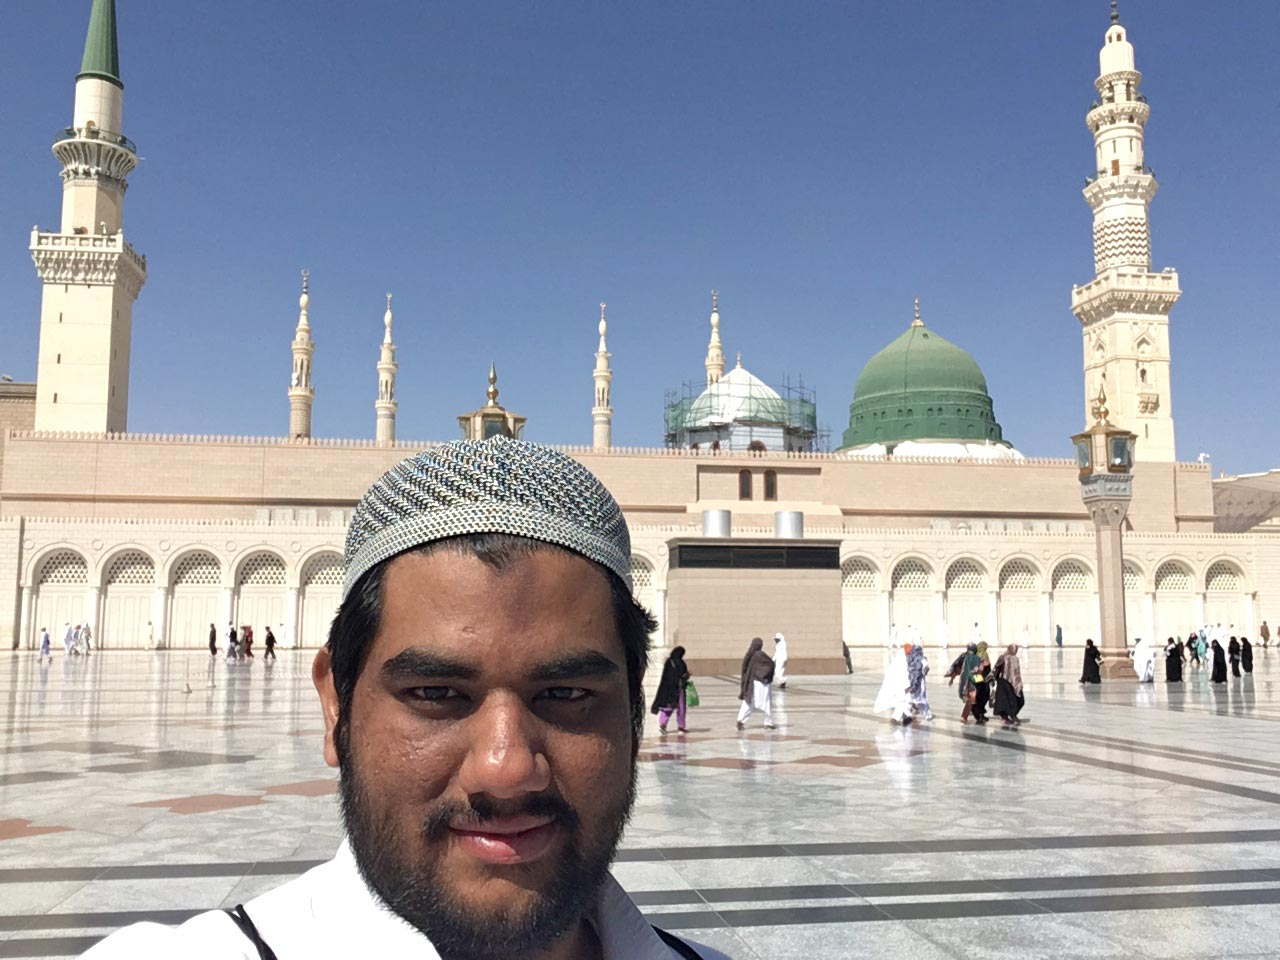 Engr. Taha Ahmed Khan in front of the Masjid-e-Nabwi in Madina Munawwara